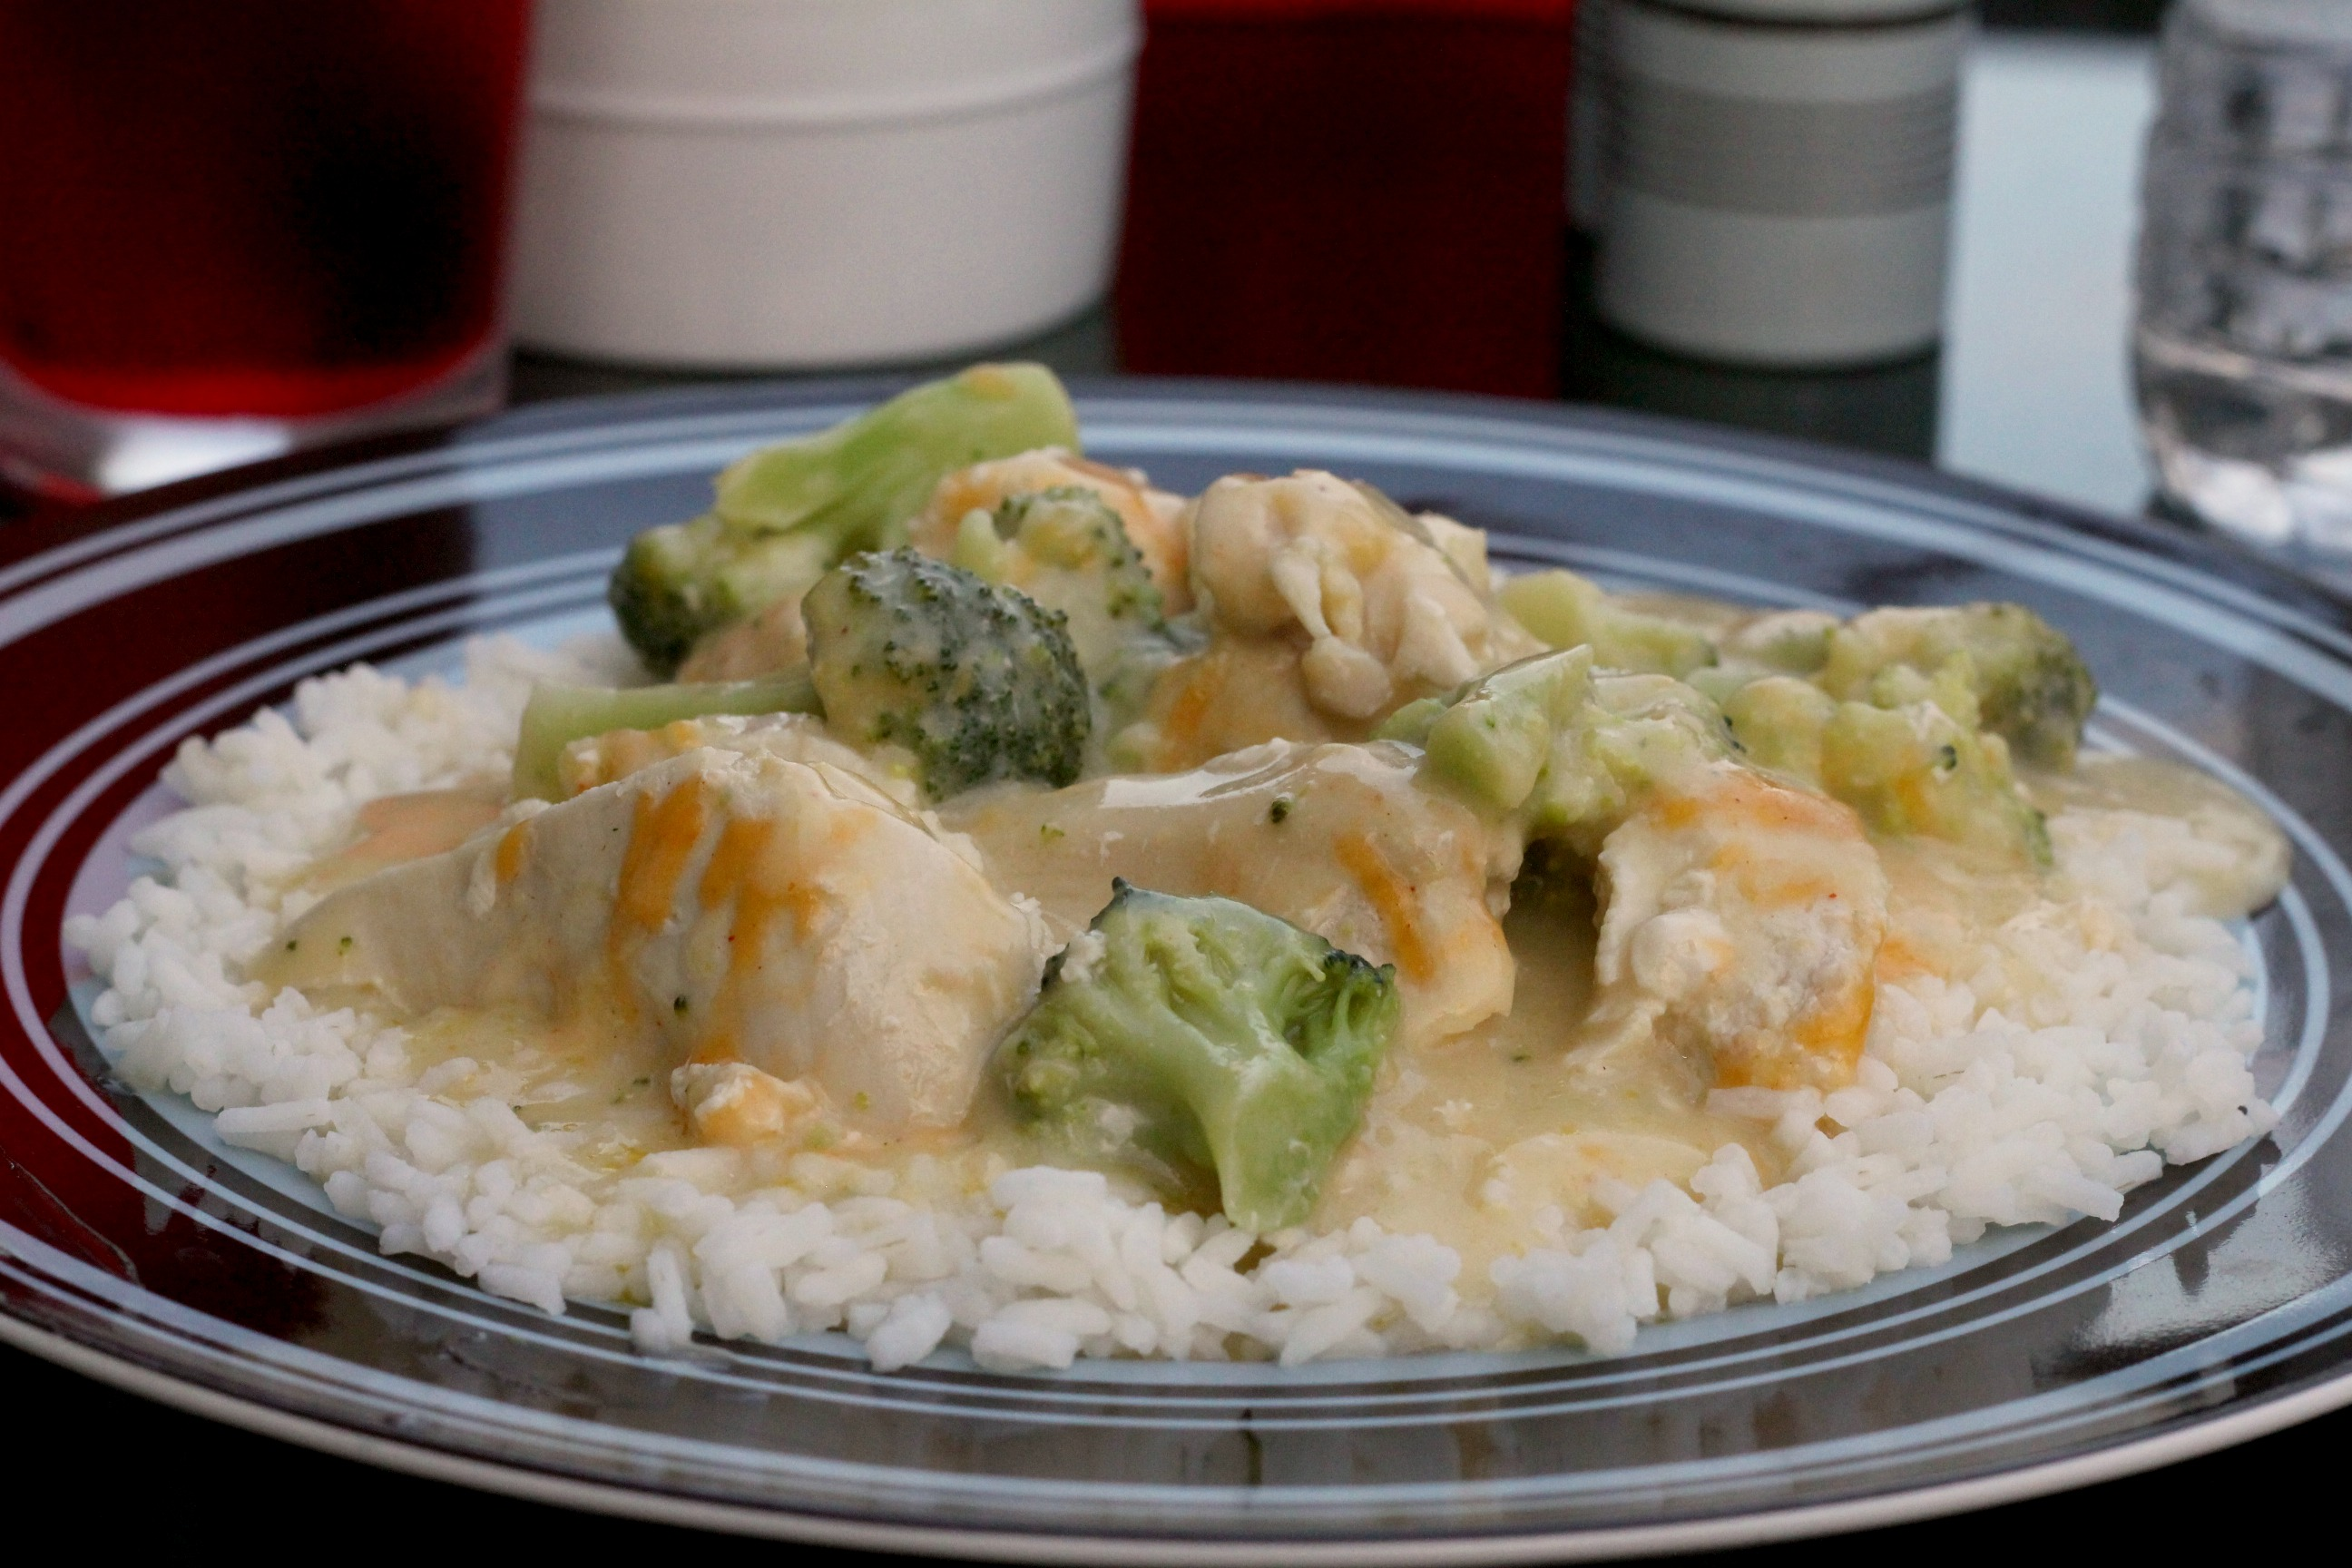 ... chicken mushroom and chicken and rice casserole creamy chicken and